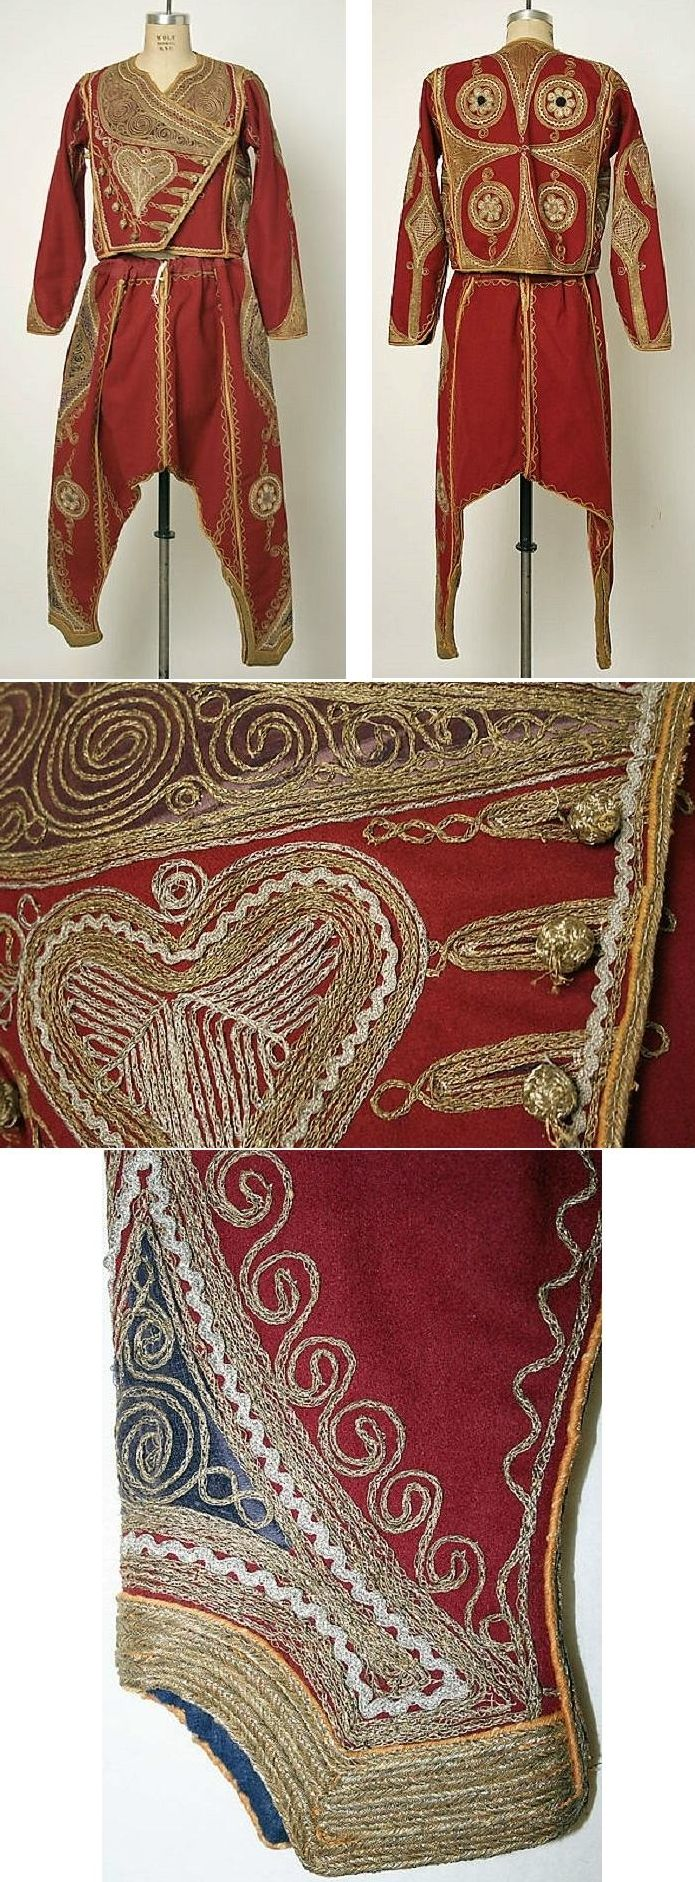 Festive/ceremonial man's ensemble.  From the Balkans.  Late-Ottoman era, end of 19th century. Metal thread embroidery on combed wool.  (Met museum, N.Y.).